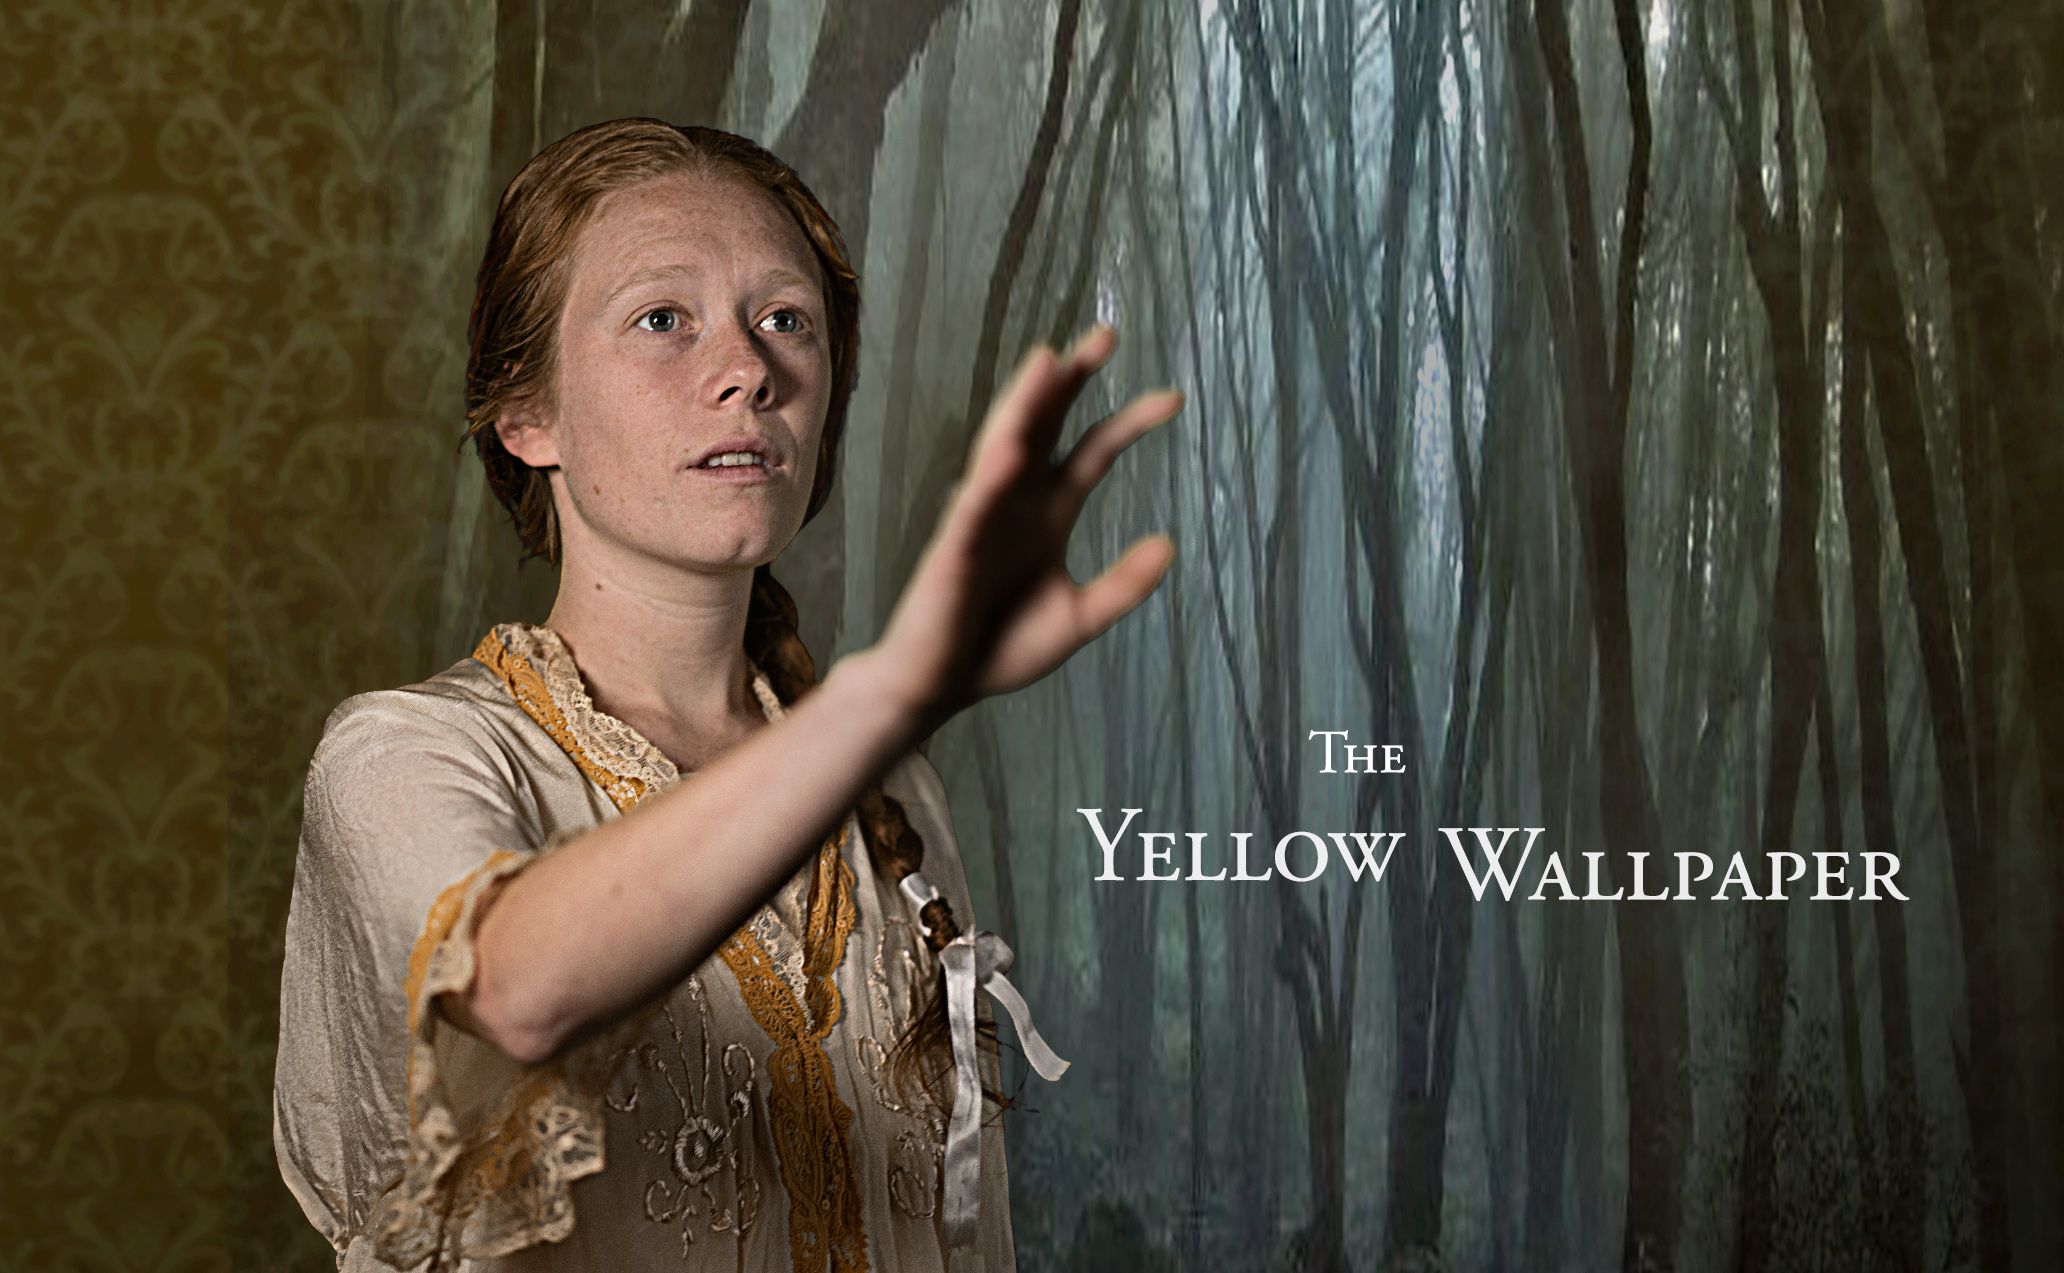 the yellow wallpaper feature film  seedspark httpswwwseedandsparkcomfundtheyellowwallpaperstory